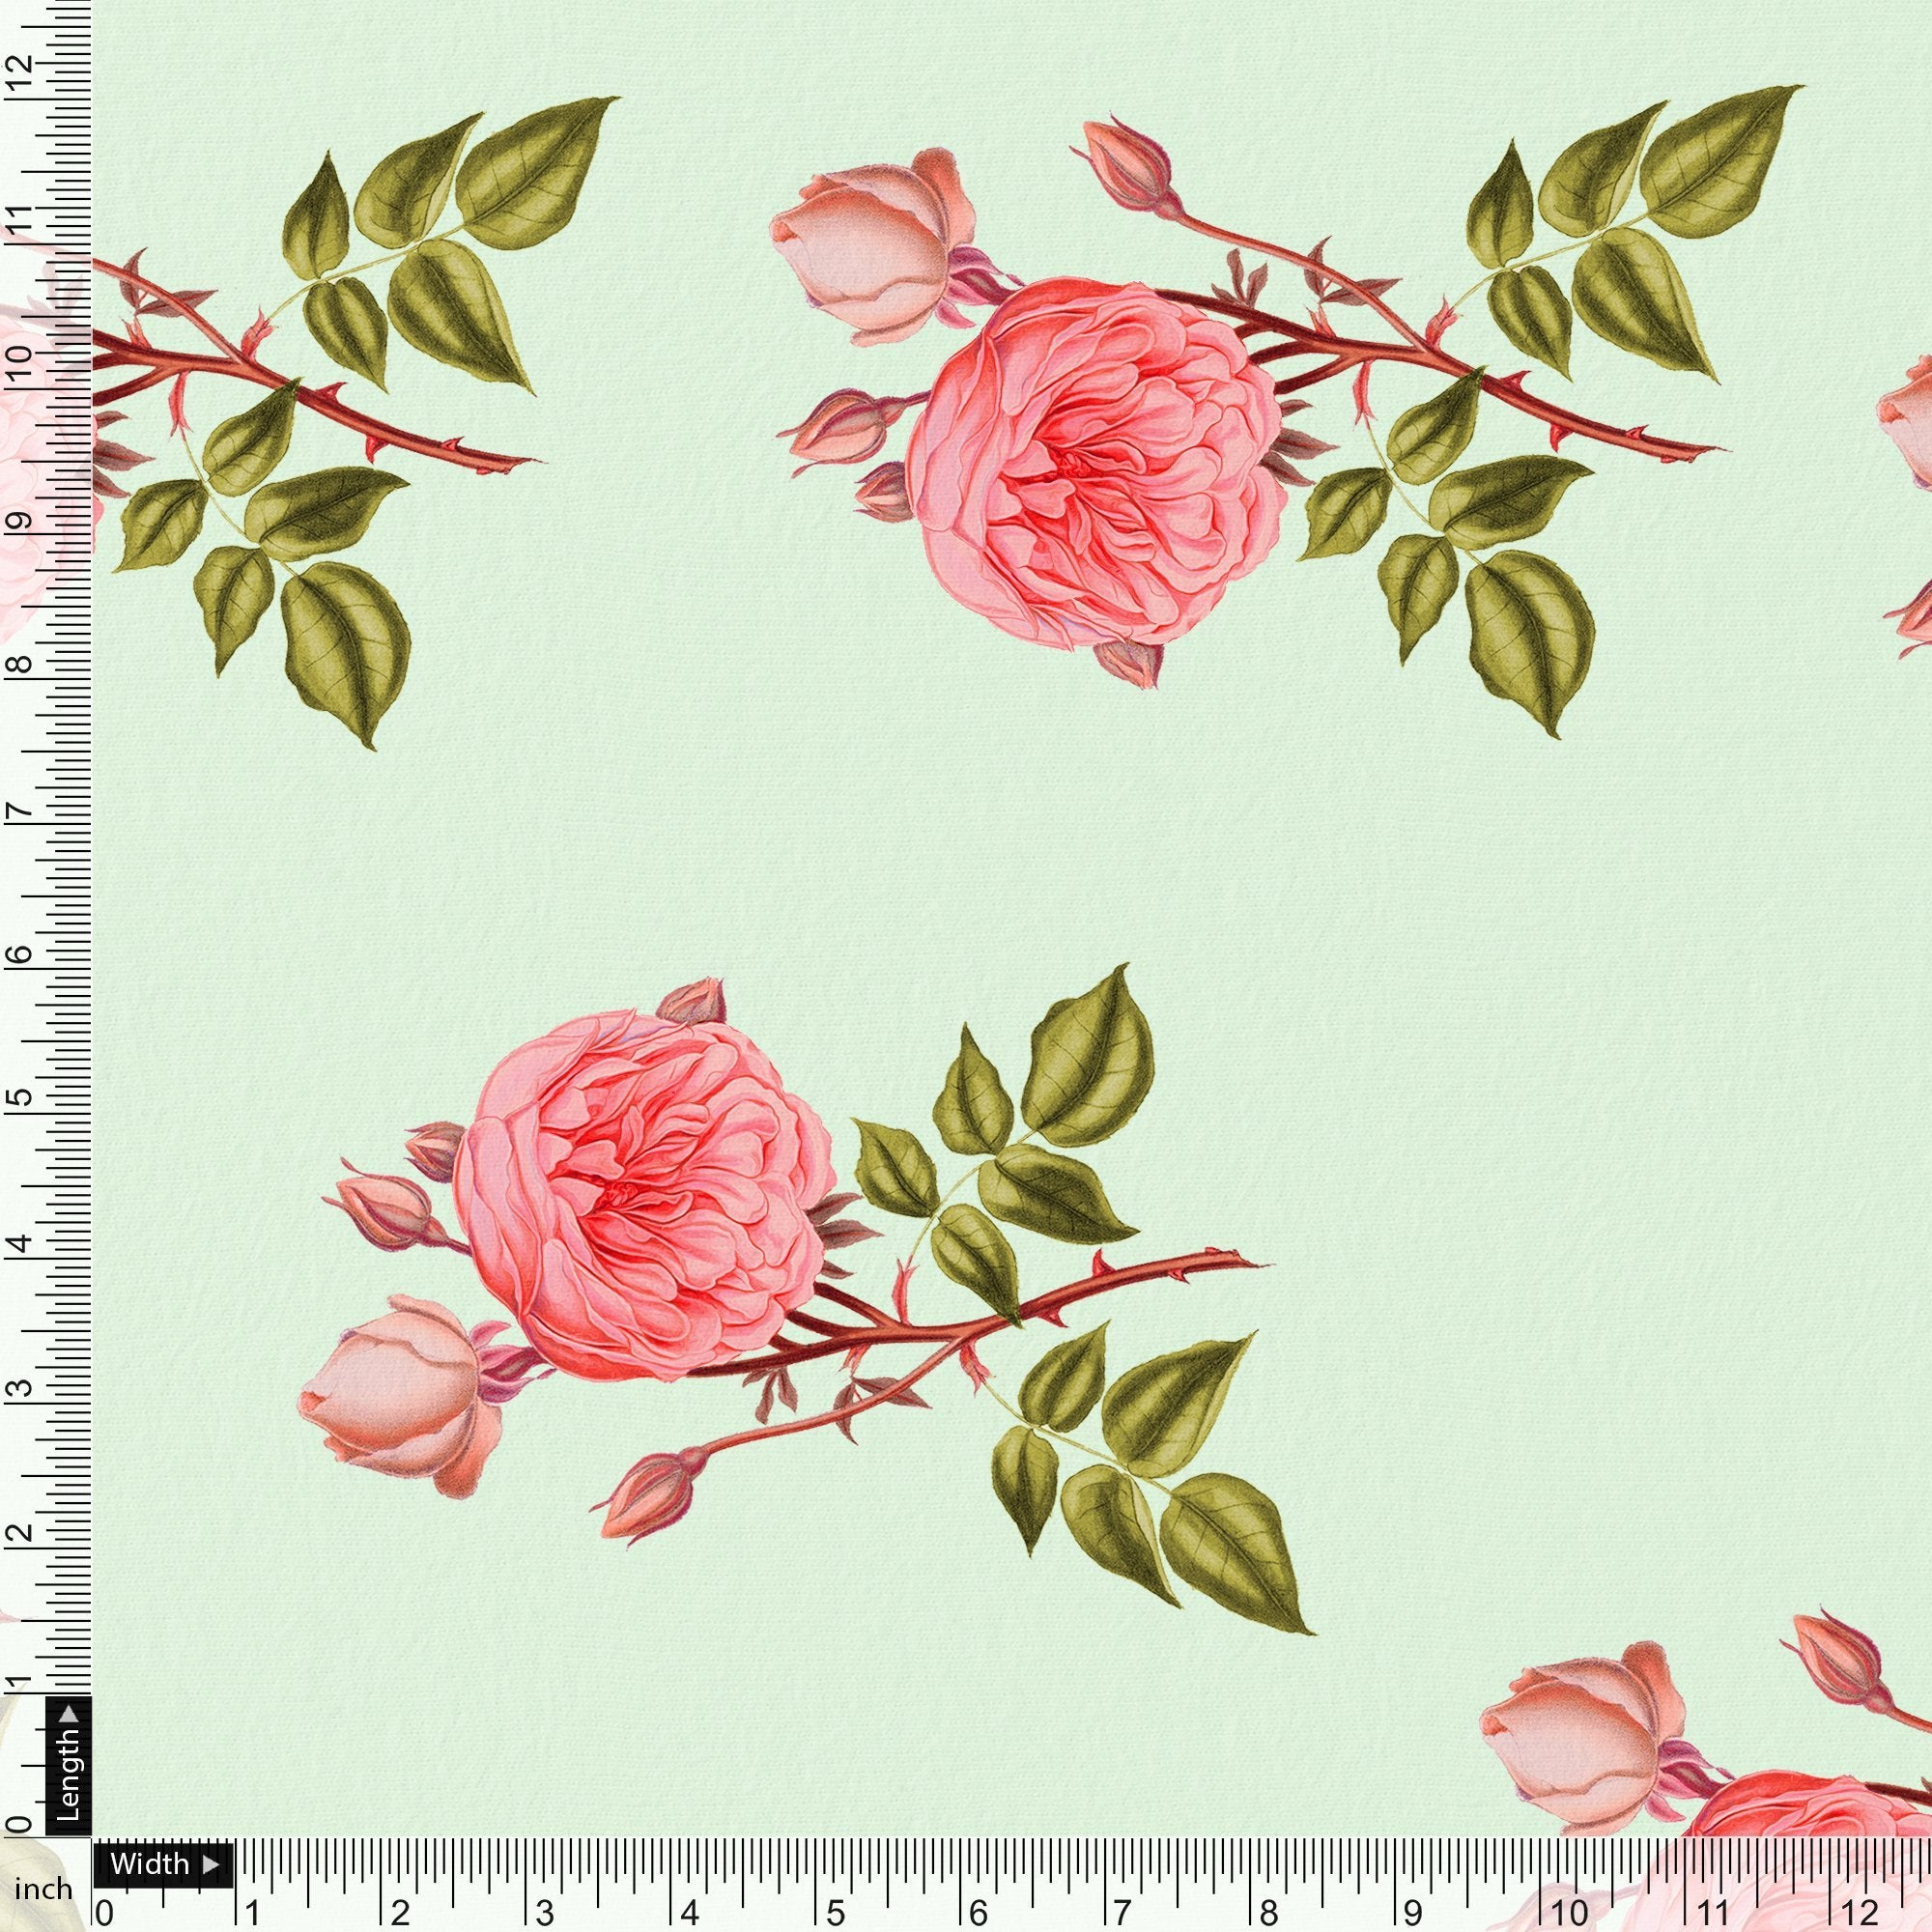 Red Rose Laying on Pista Base Digital Printed Fabric - FAB VOGUE Studio. Shop Fabric @ www.fabvoguestudio.com